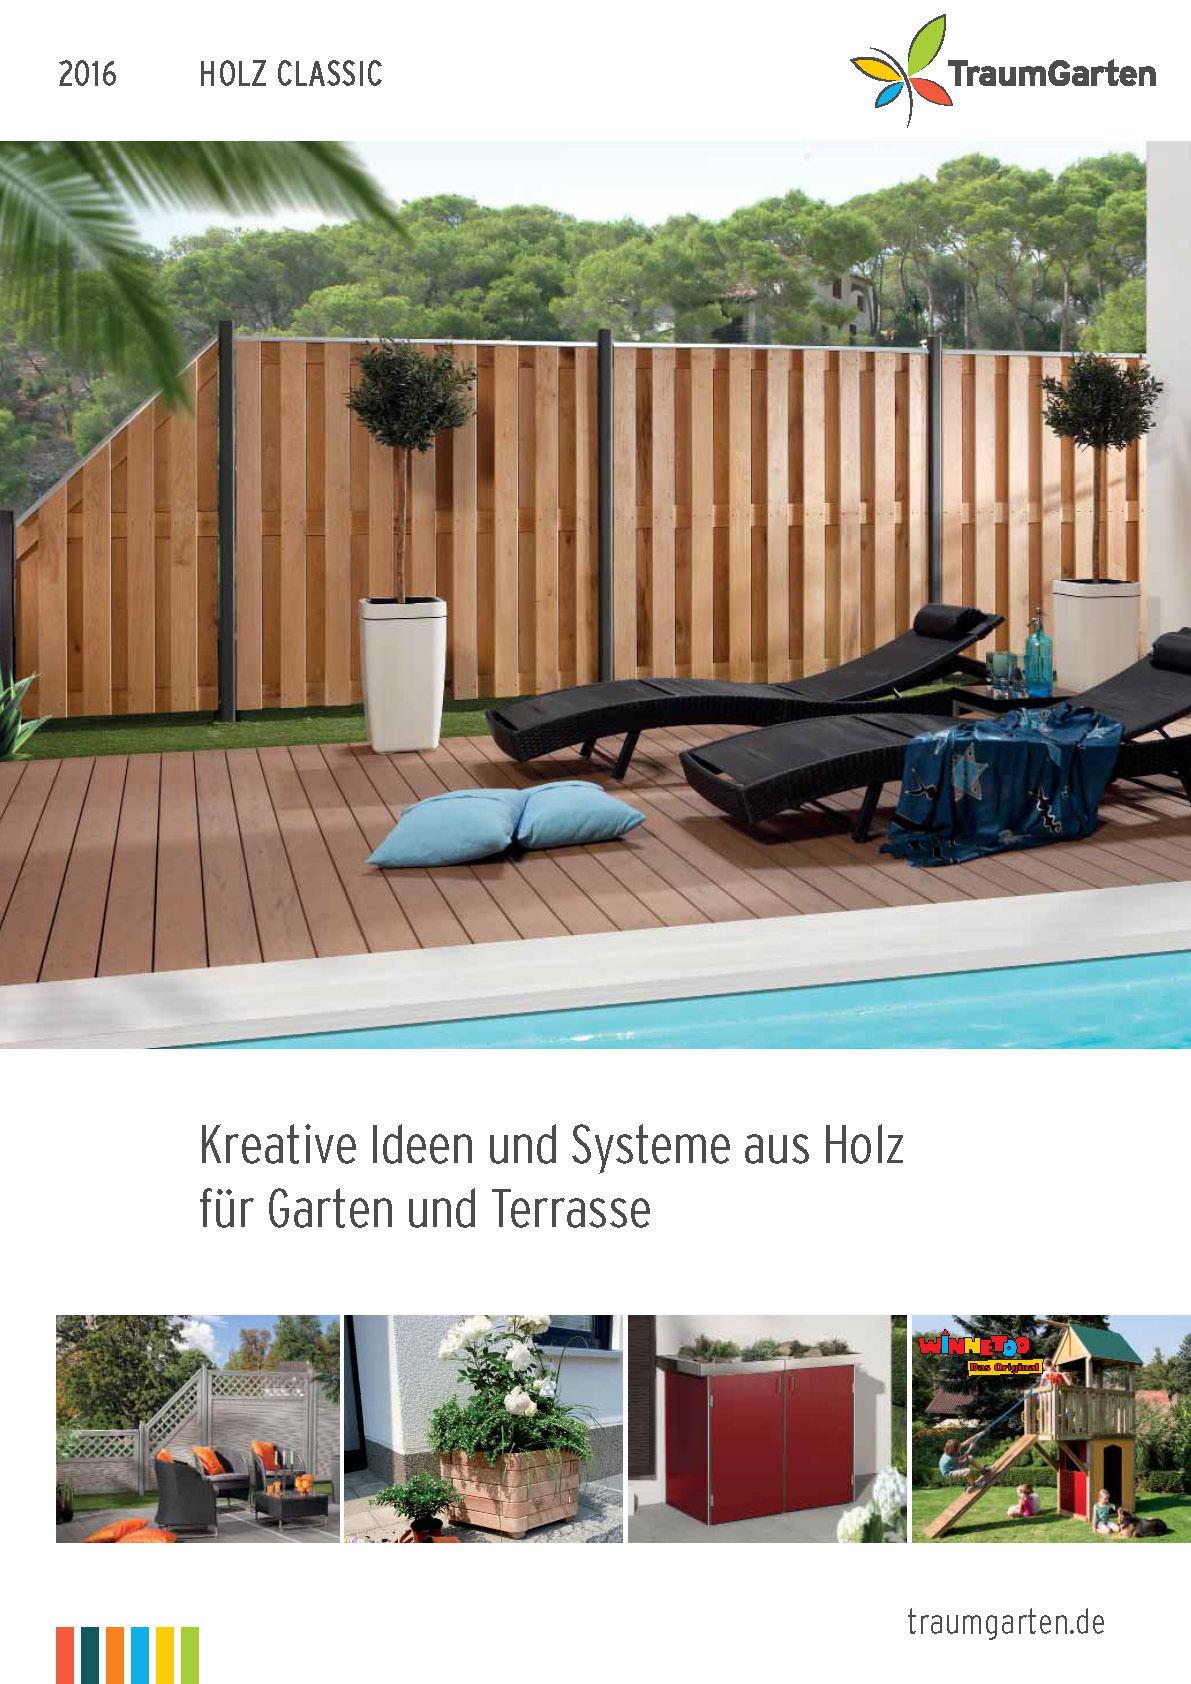 terrassendielen holzdecks wpc kaufen friedrichshafen konstanz lindau. Black Bedroom Furniture Sets. Home Design Ideas